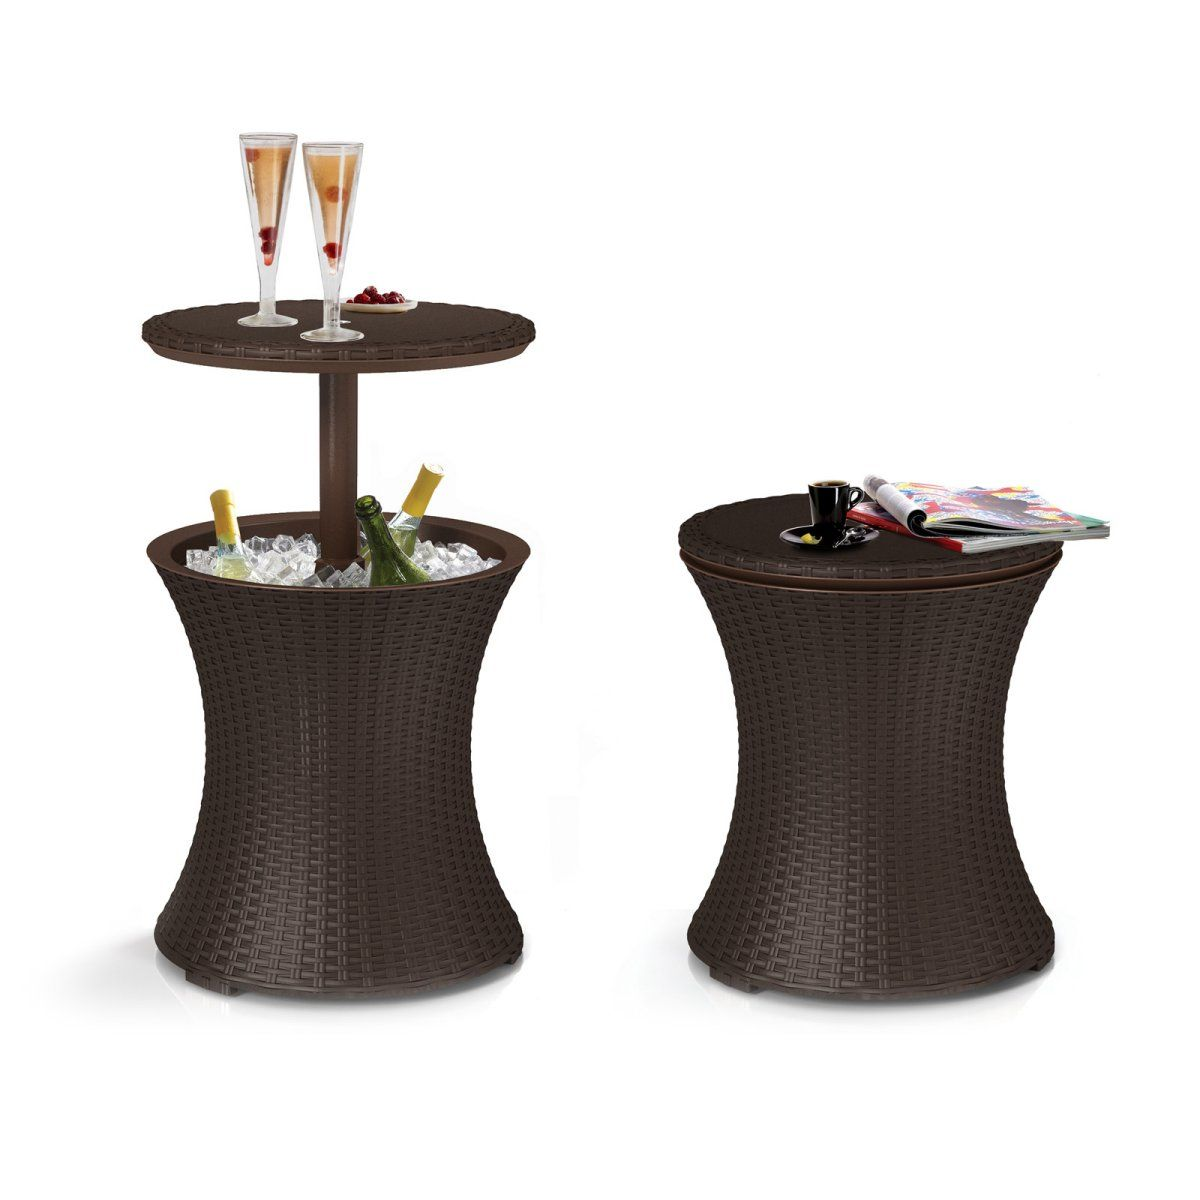 Keter Pacific Cool Bar Rattan Party Cooler at Hayneedle